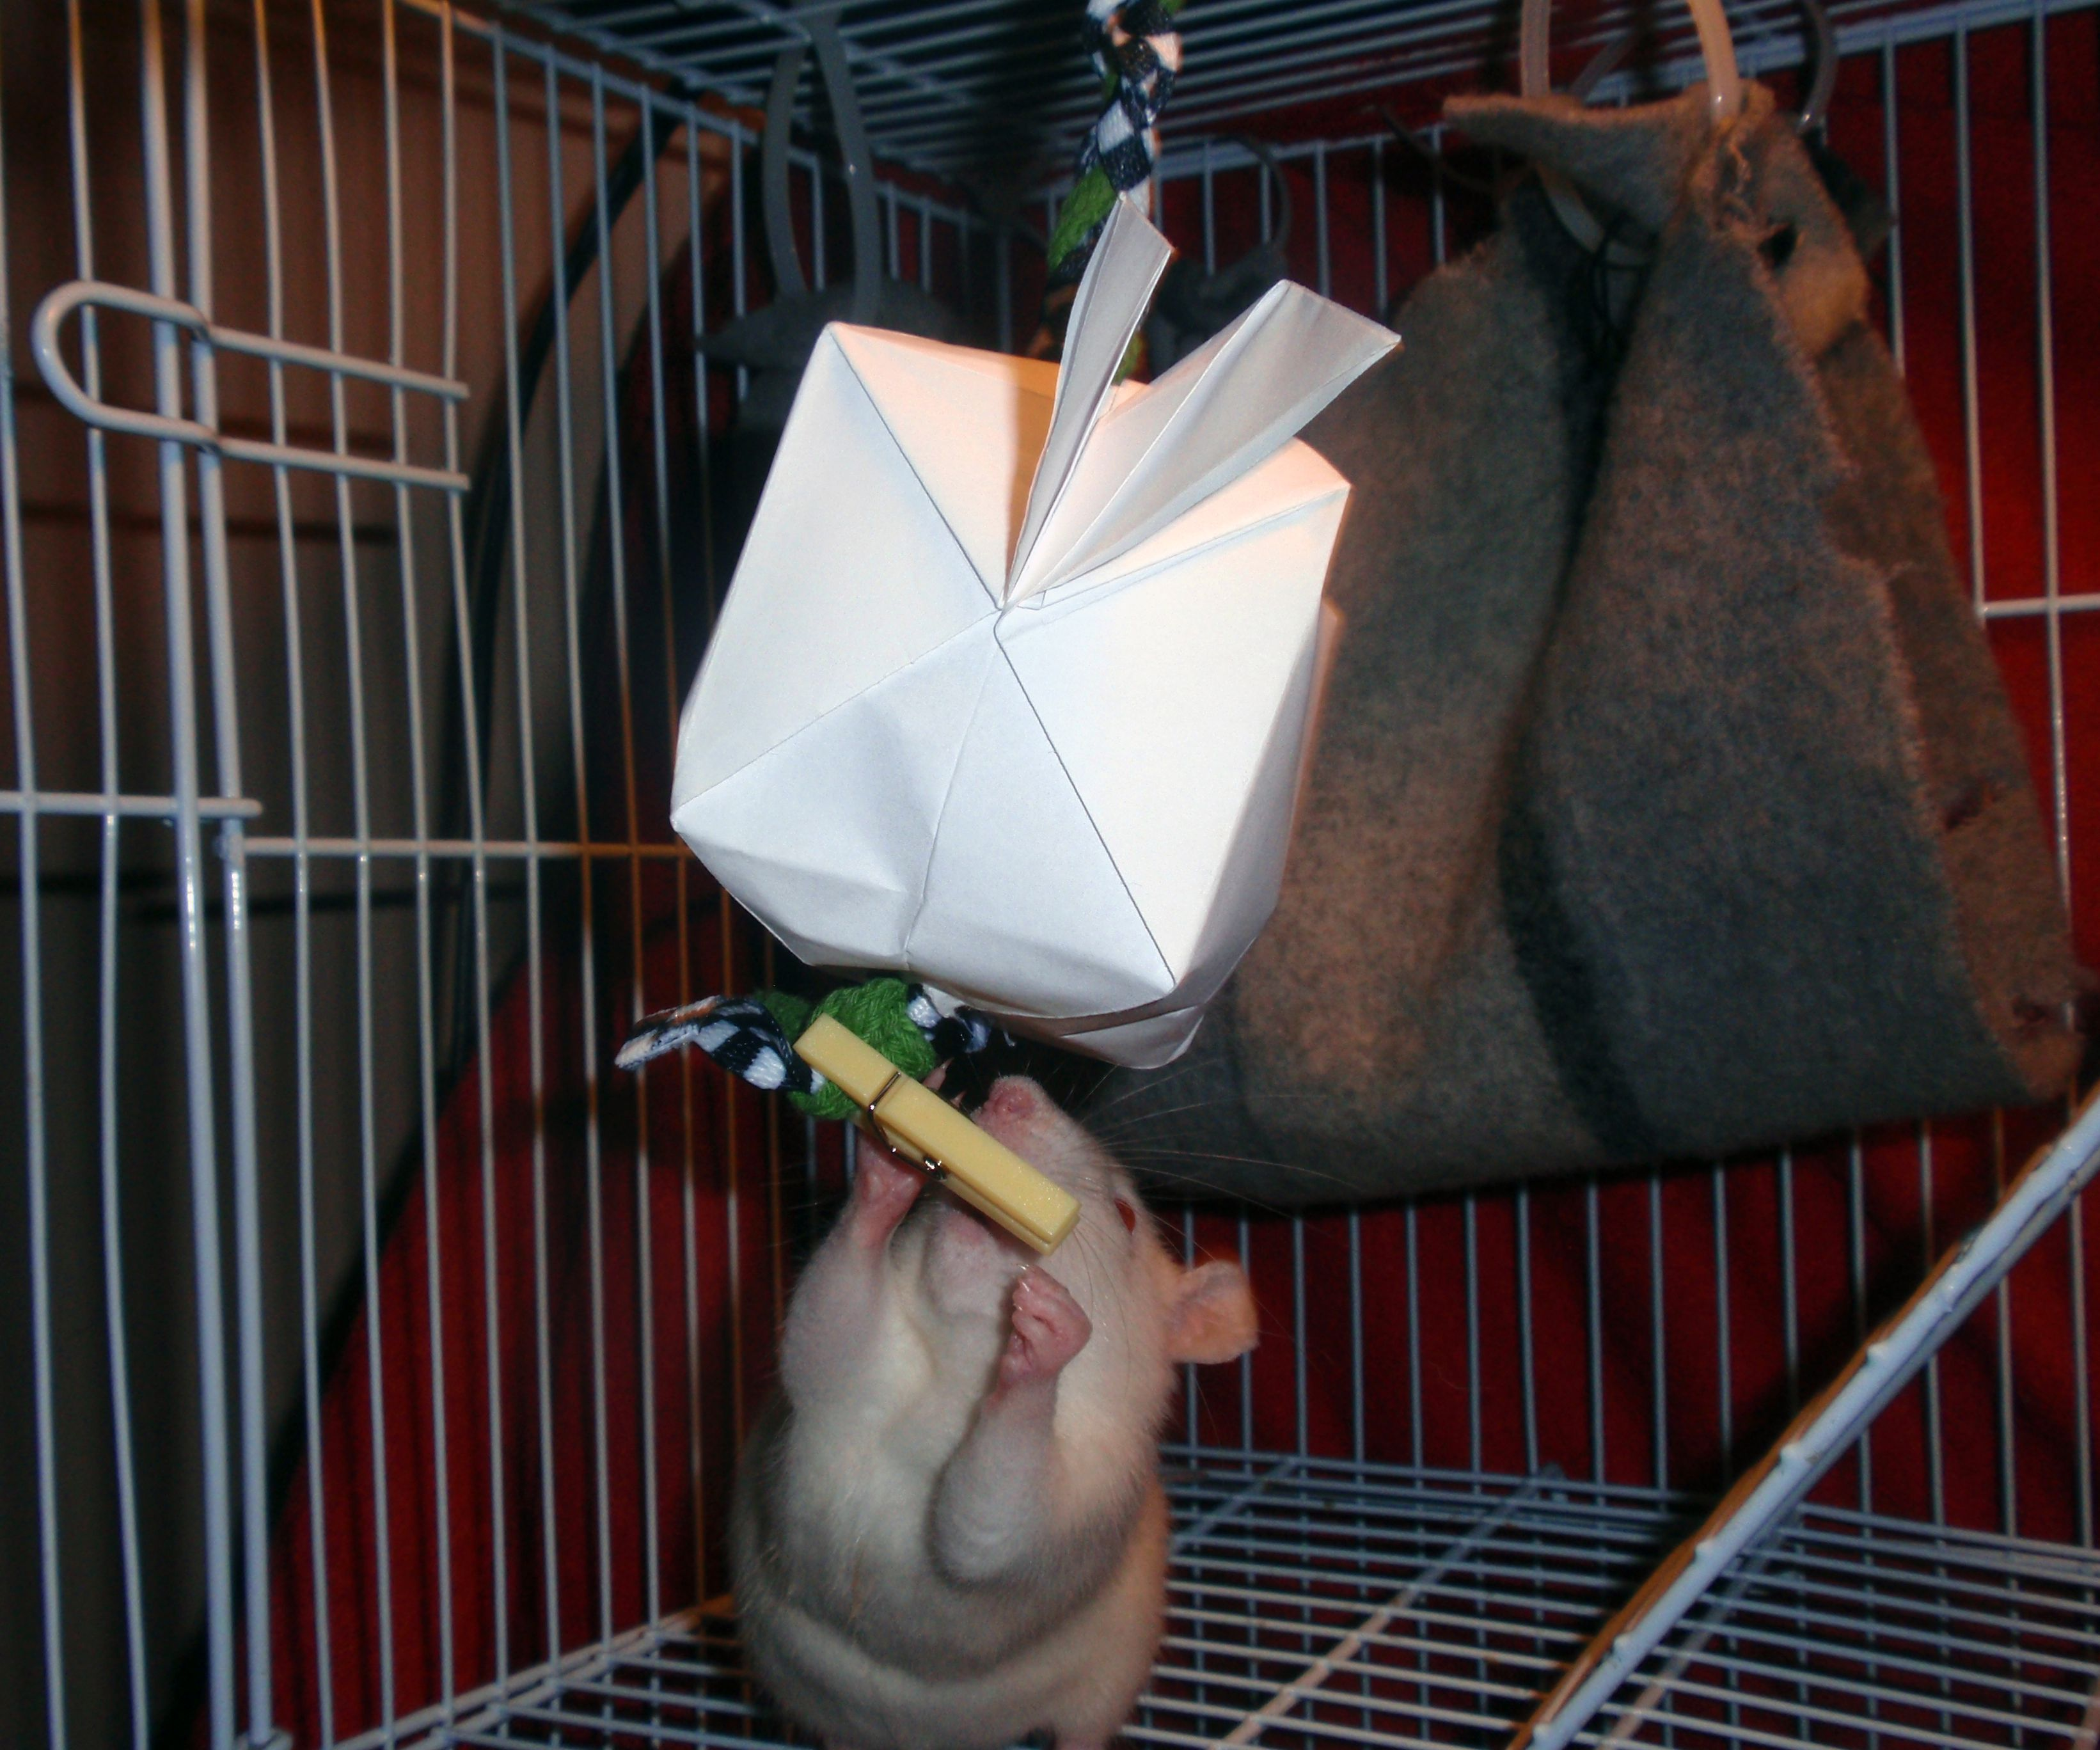 Treat filled Origami for cats or small pets!